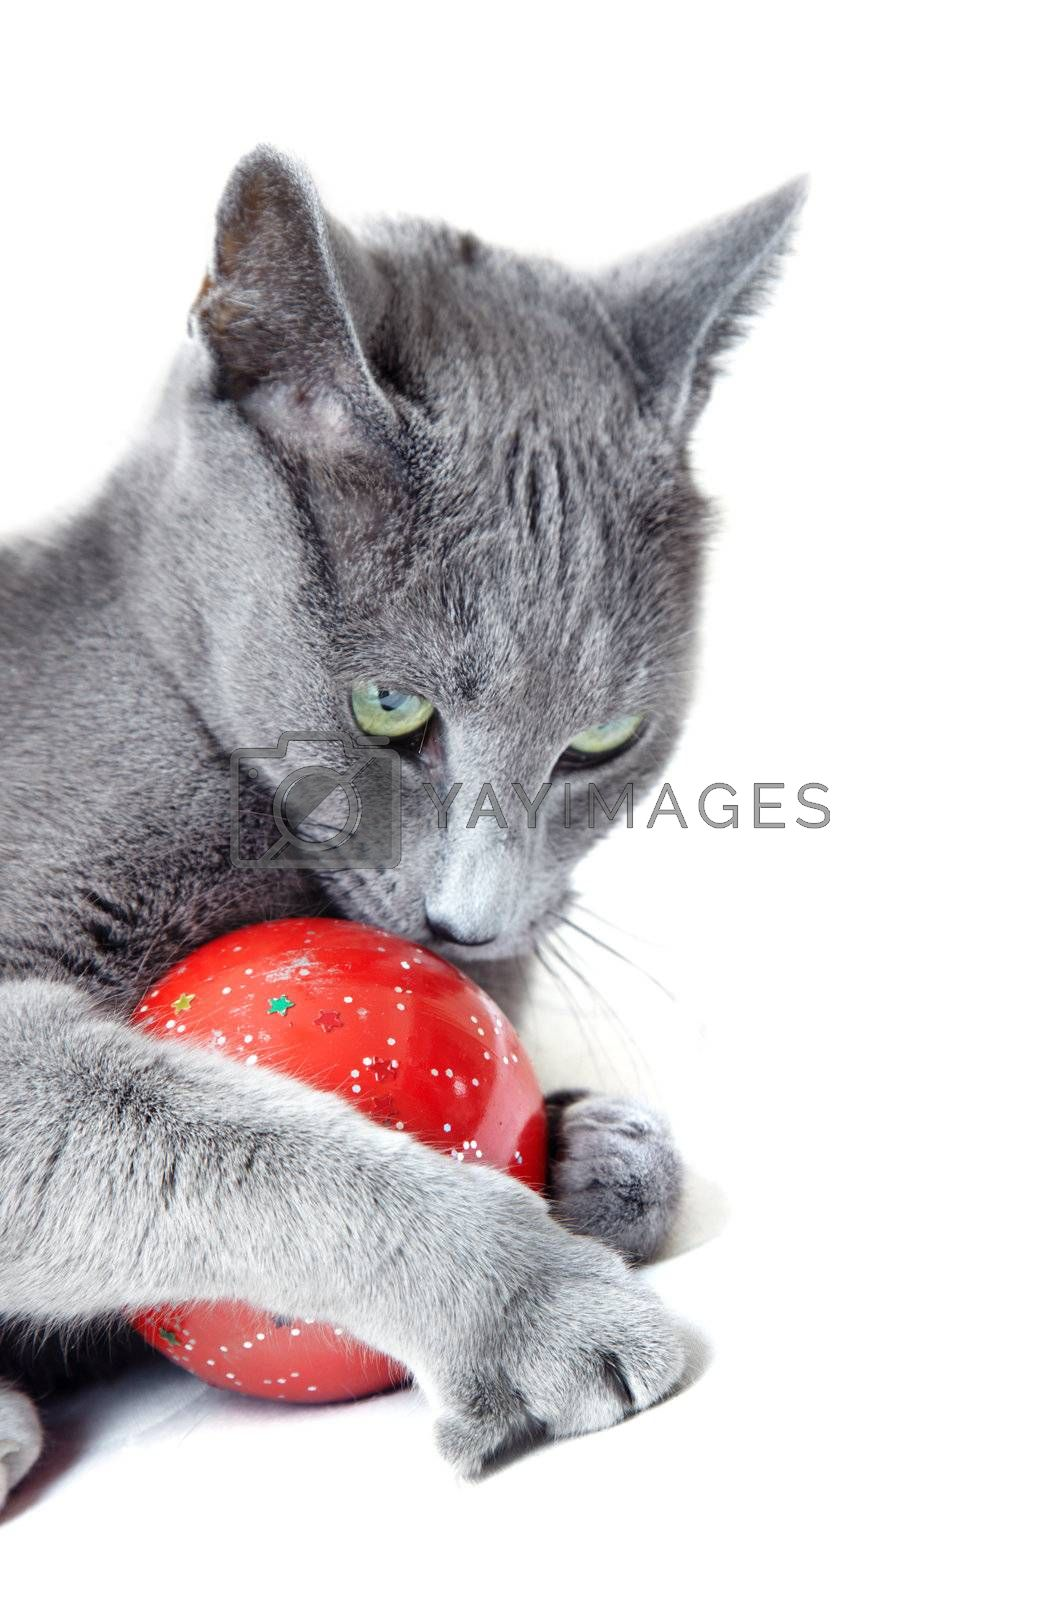 Cat playing with Christmas toy on a white background